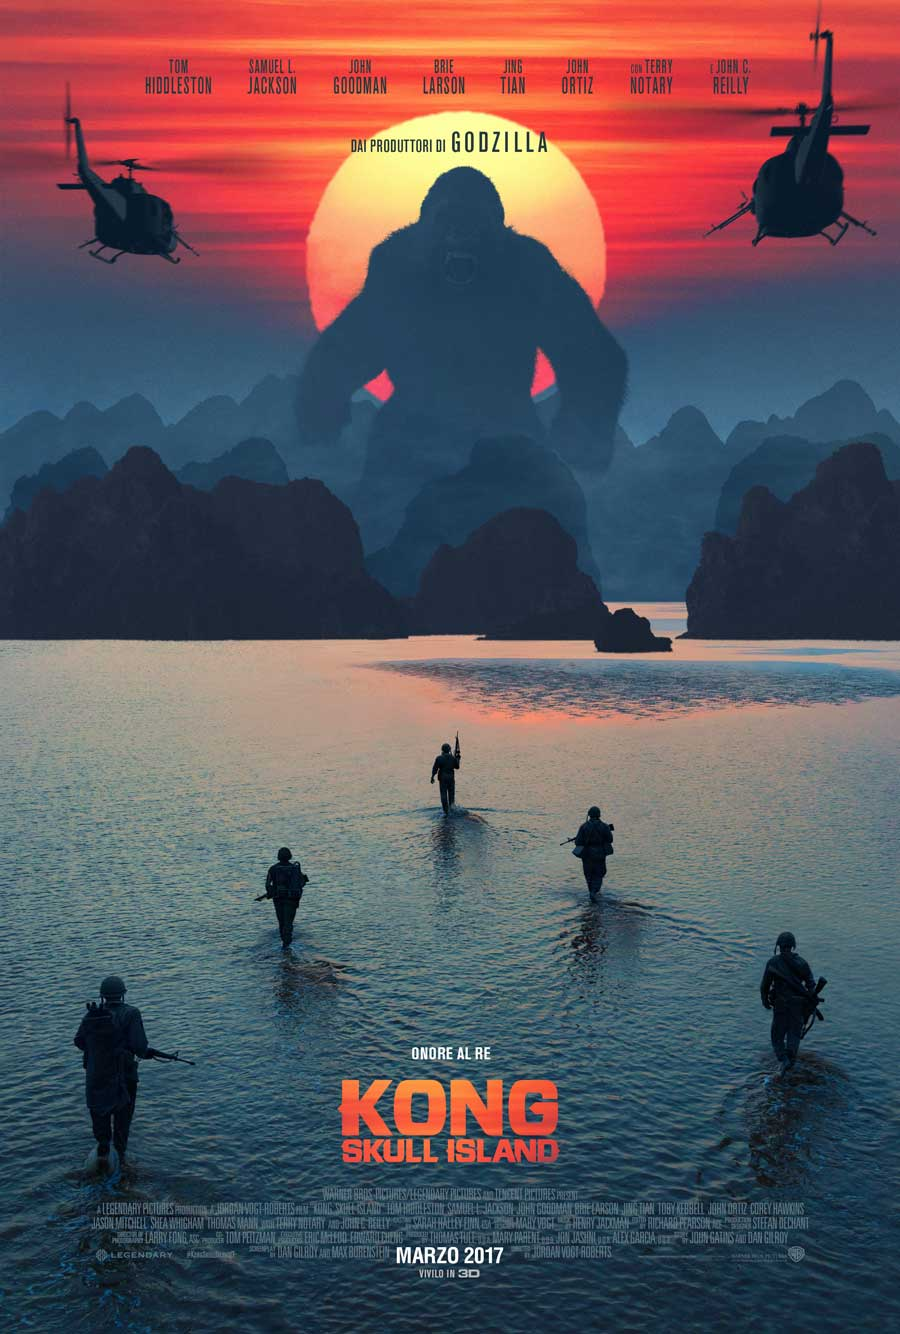 Poster for Kong